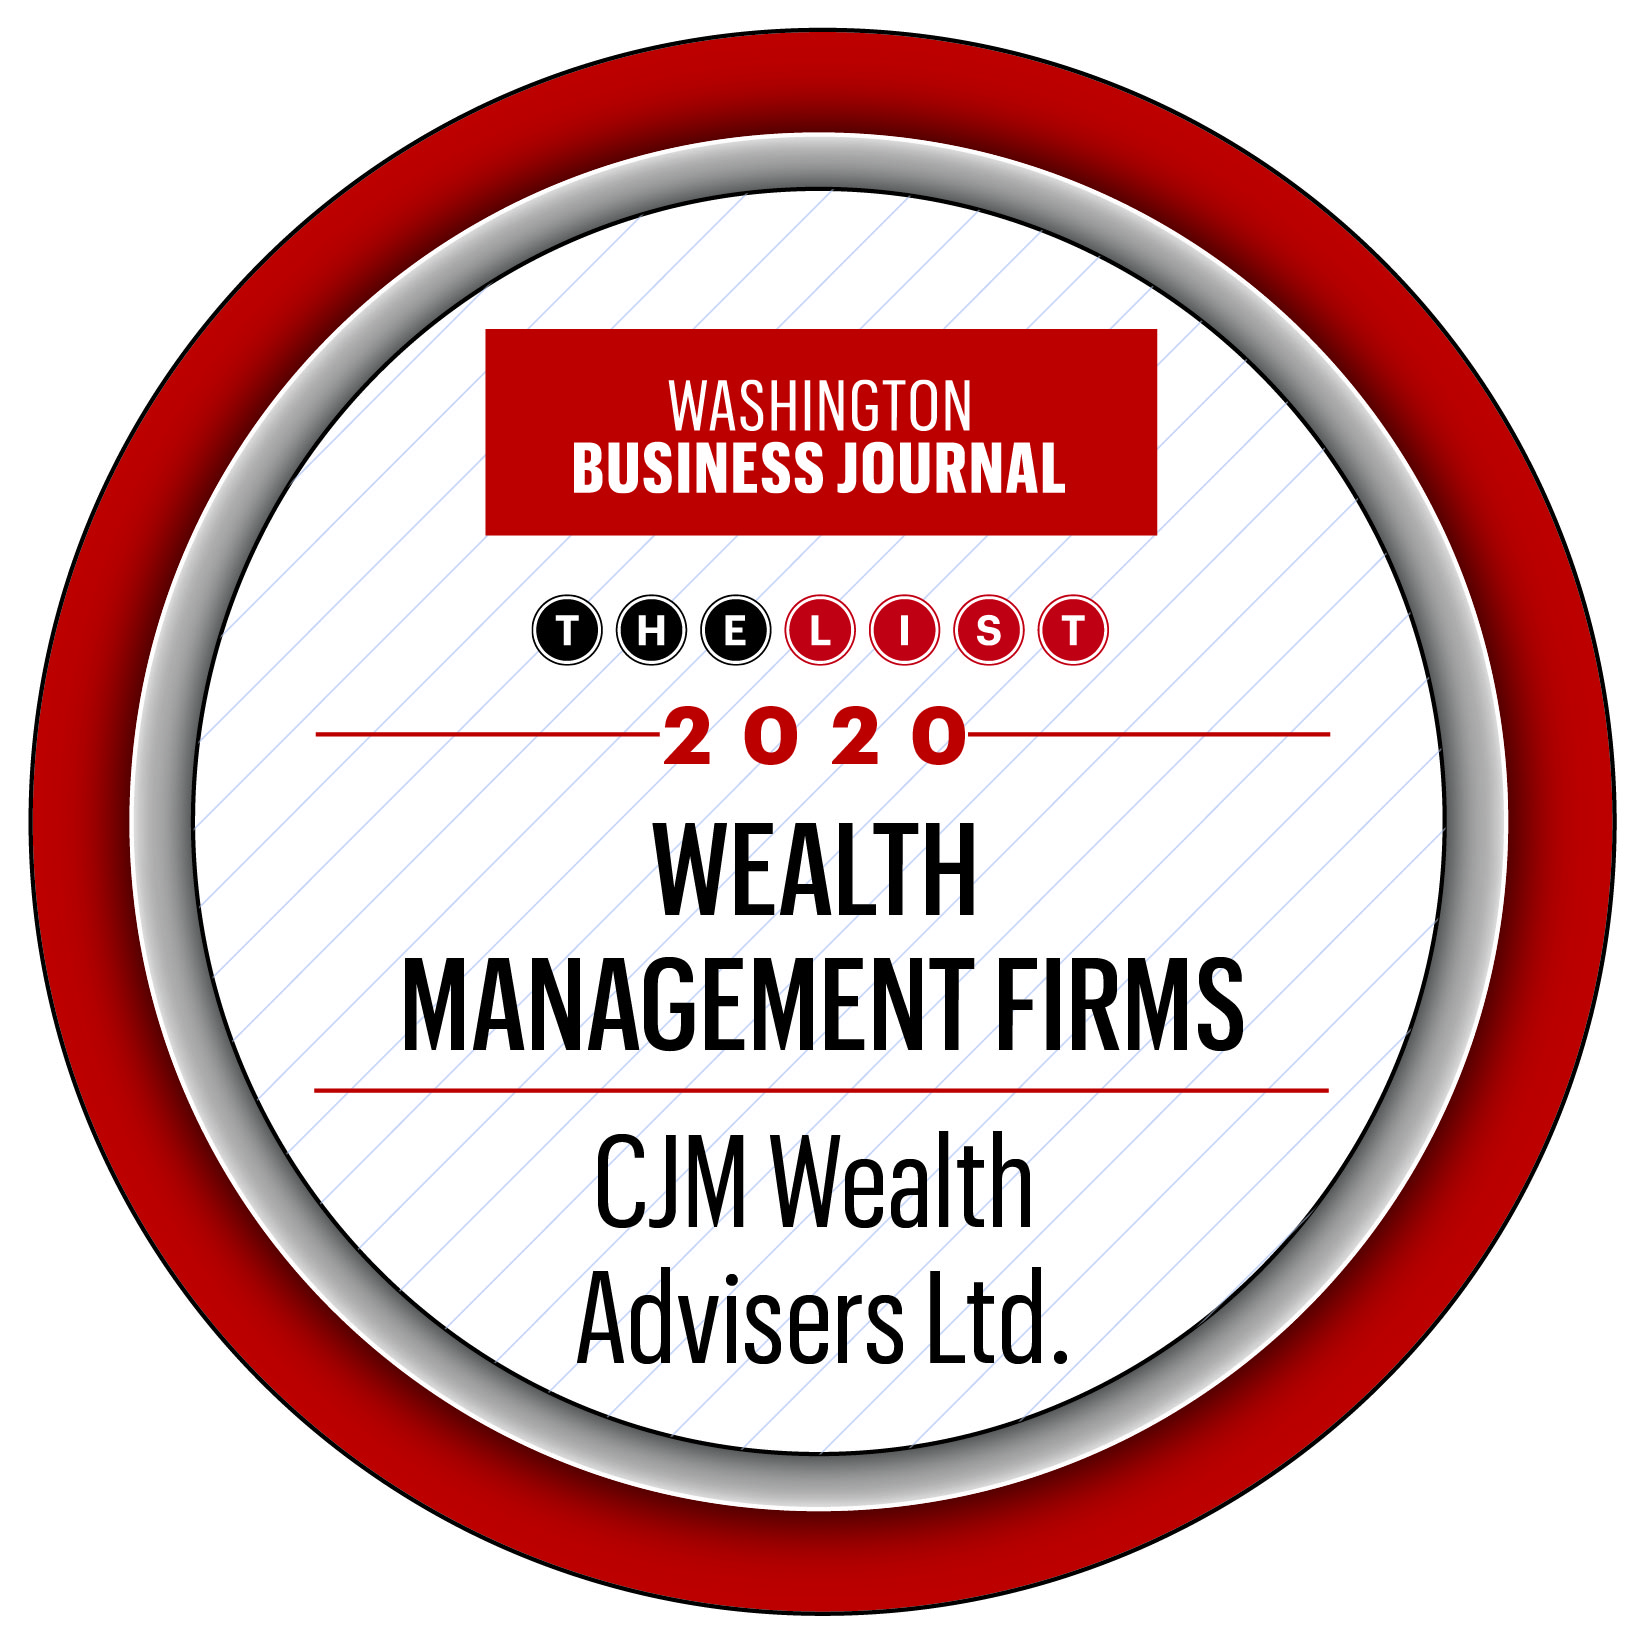 Washington Business Journal - The List - 2020 Wealth Management Firms